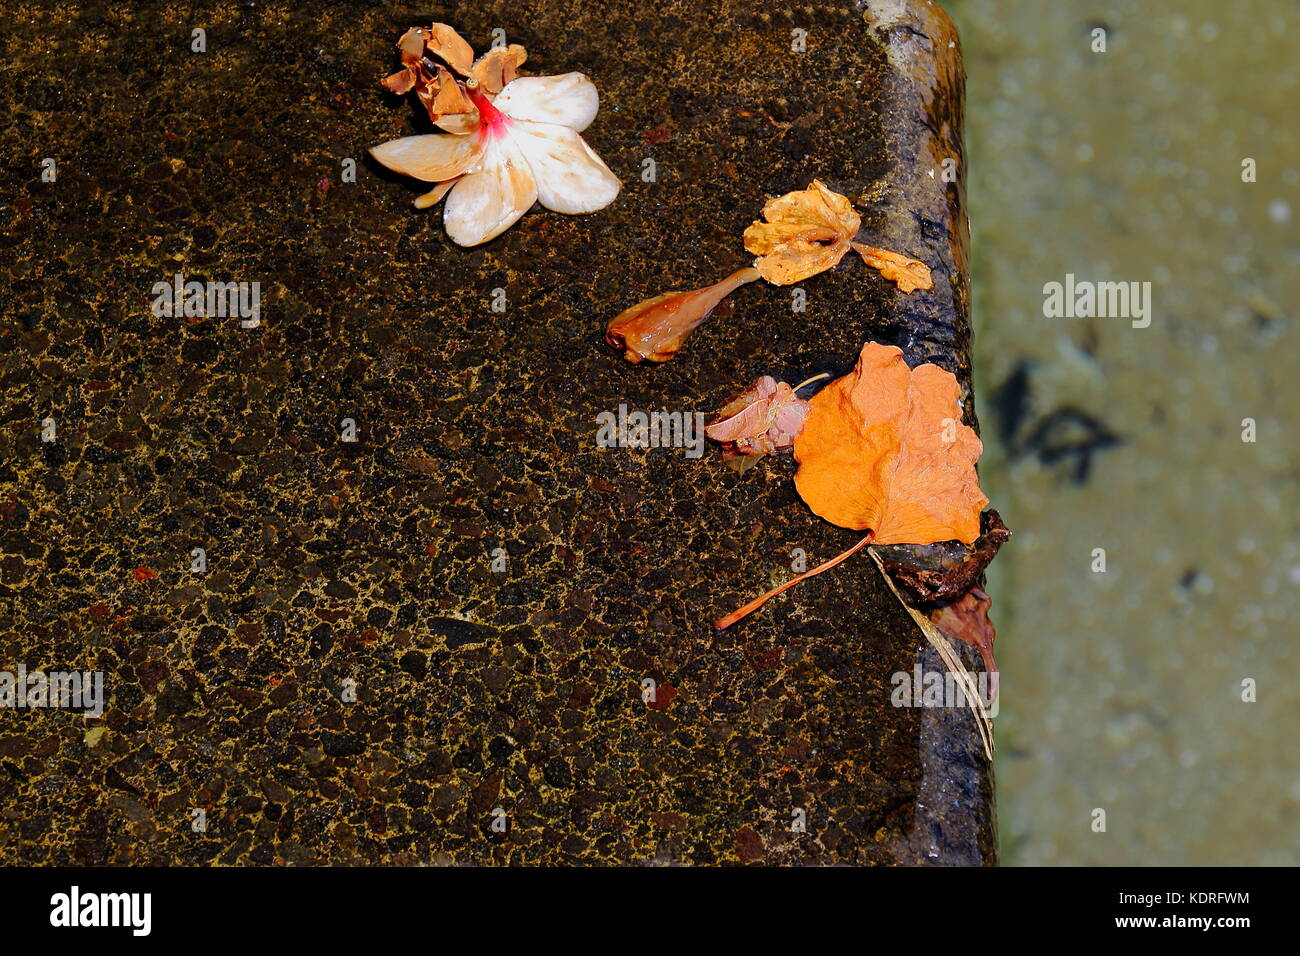 Flower petals in a stream just about to fall over the edge of an ornamental waterfall in landscape format with copy - Stock Image